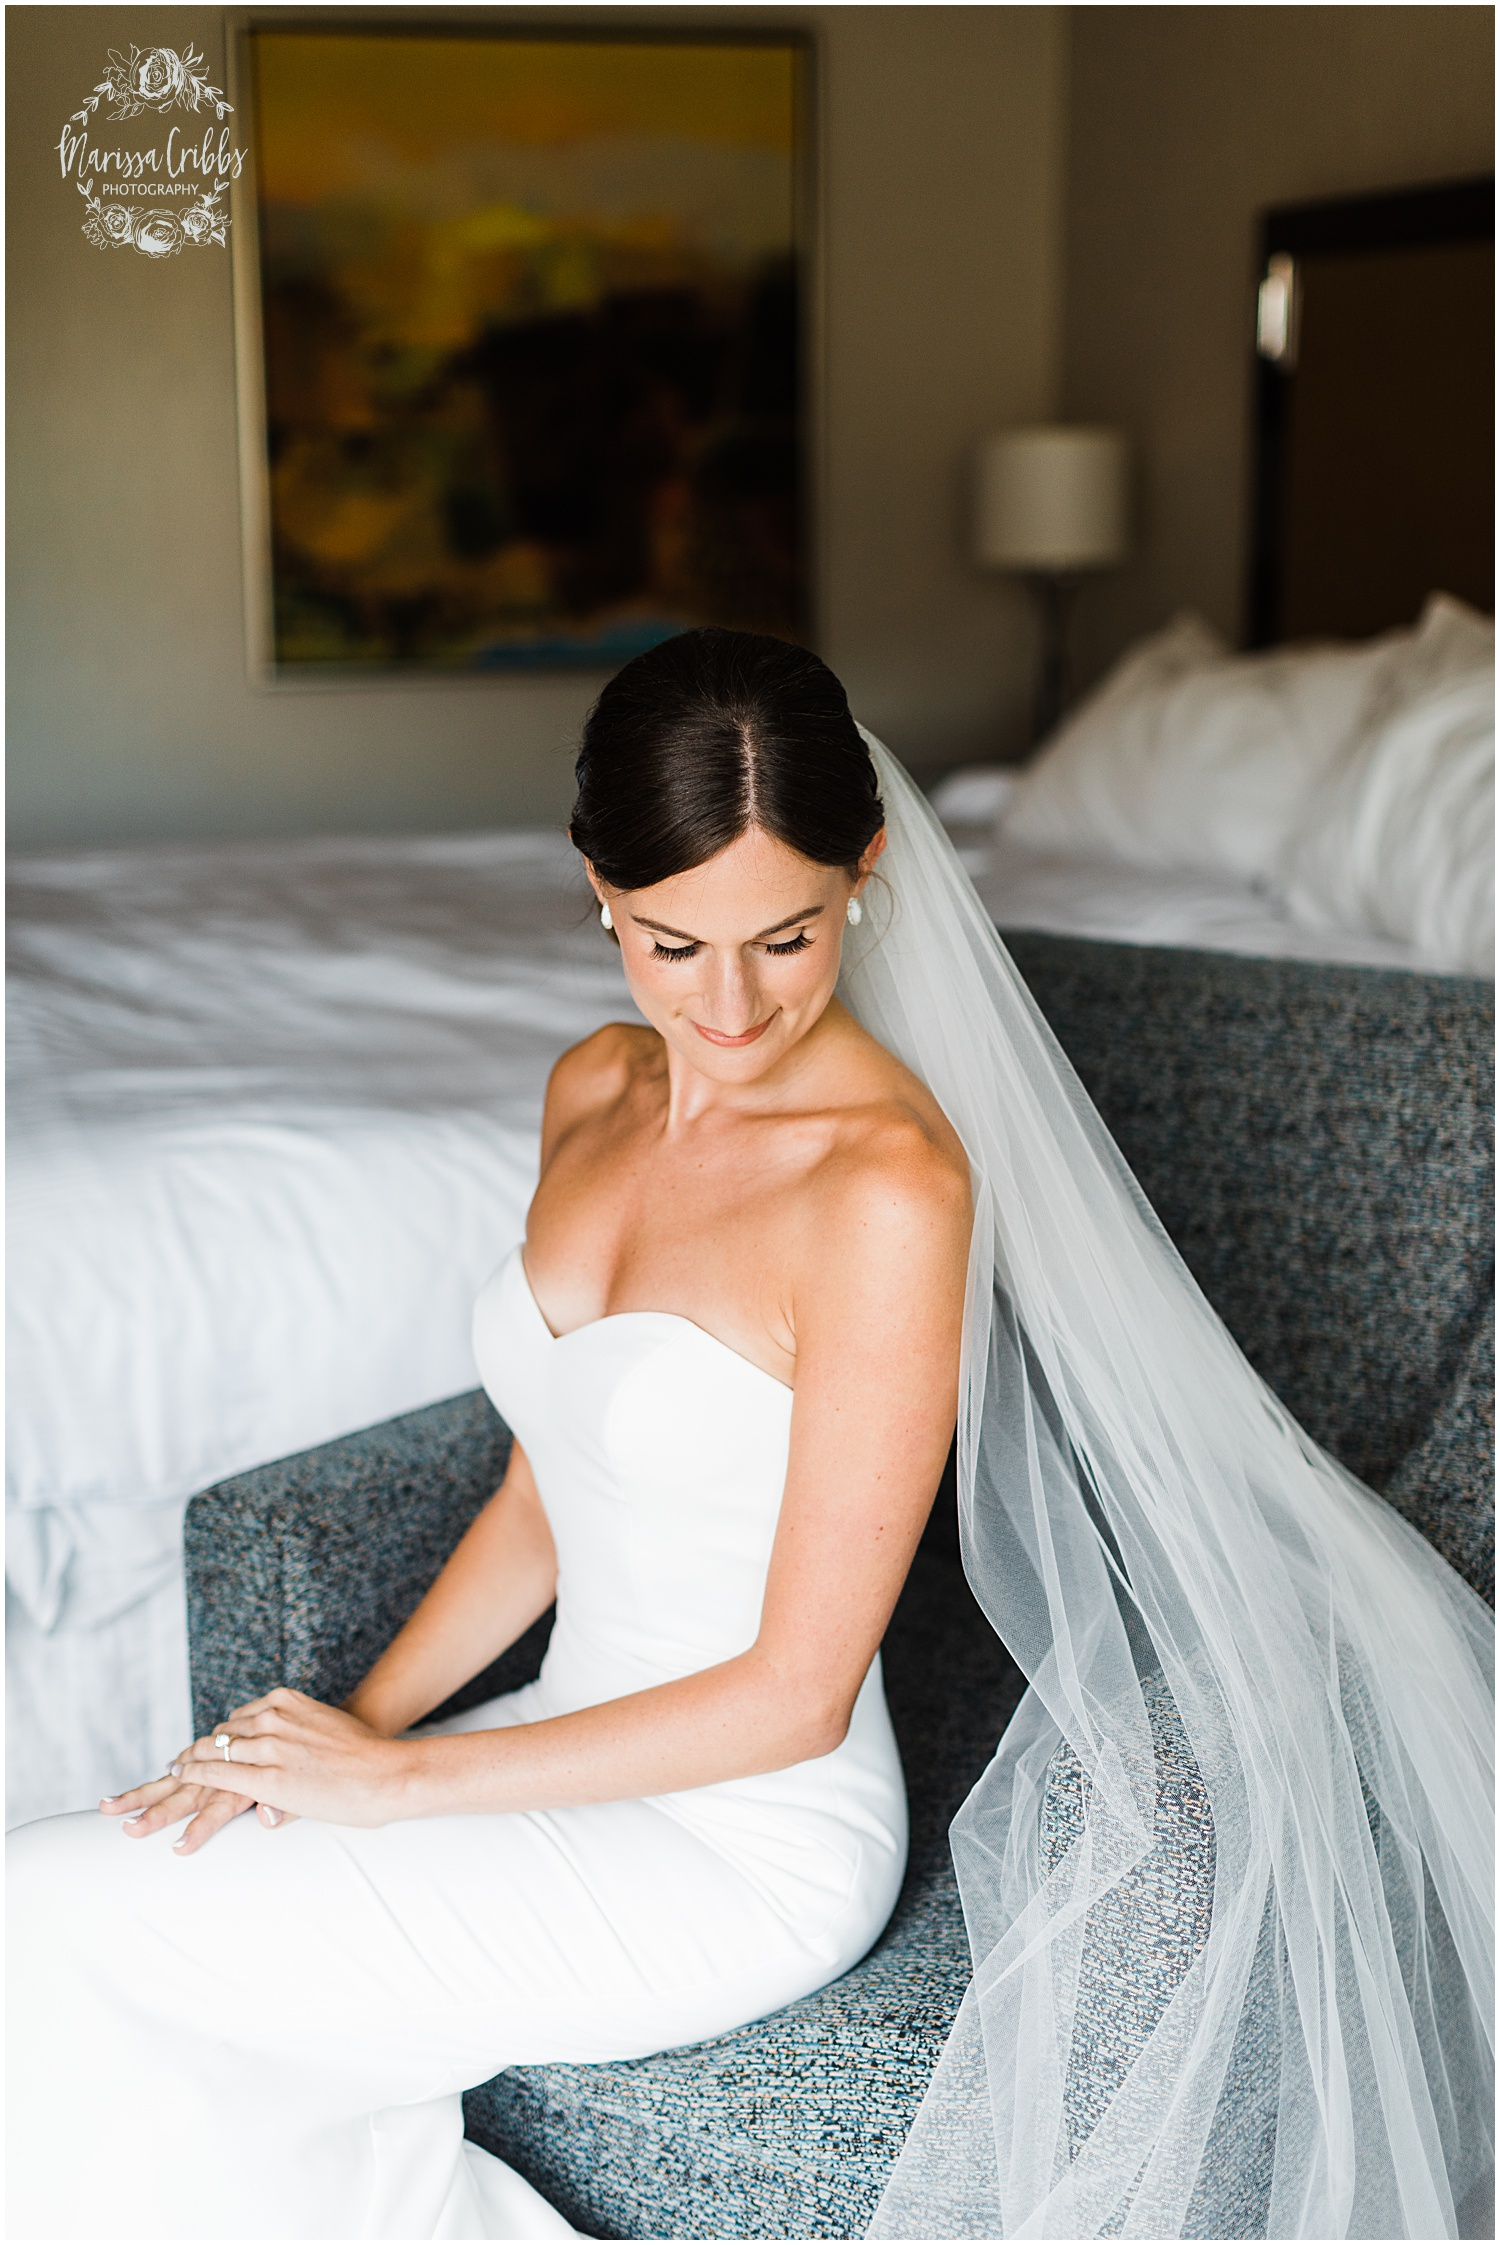 JOANNE & GEORGE MARRIED BLOG | MARISSA CRIBBS PHOTOGRAPHY | THE ABBOTT | KANSAS CITY WEDDING PHOTOS_9005.jpg